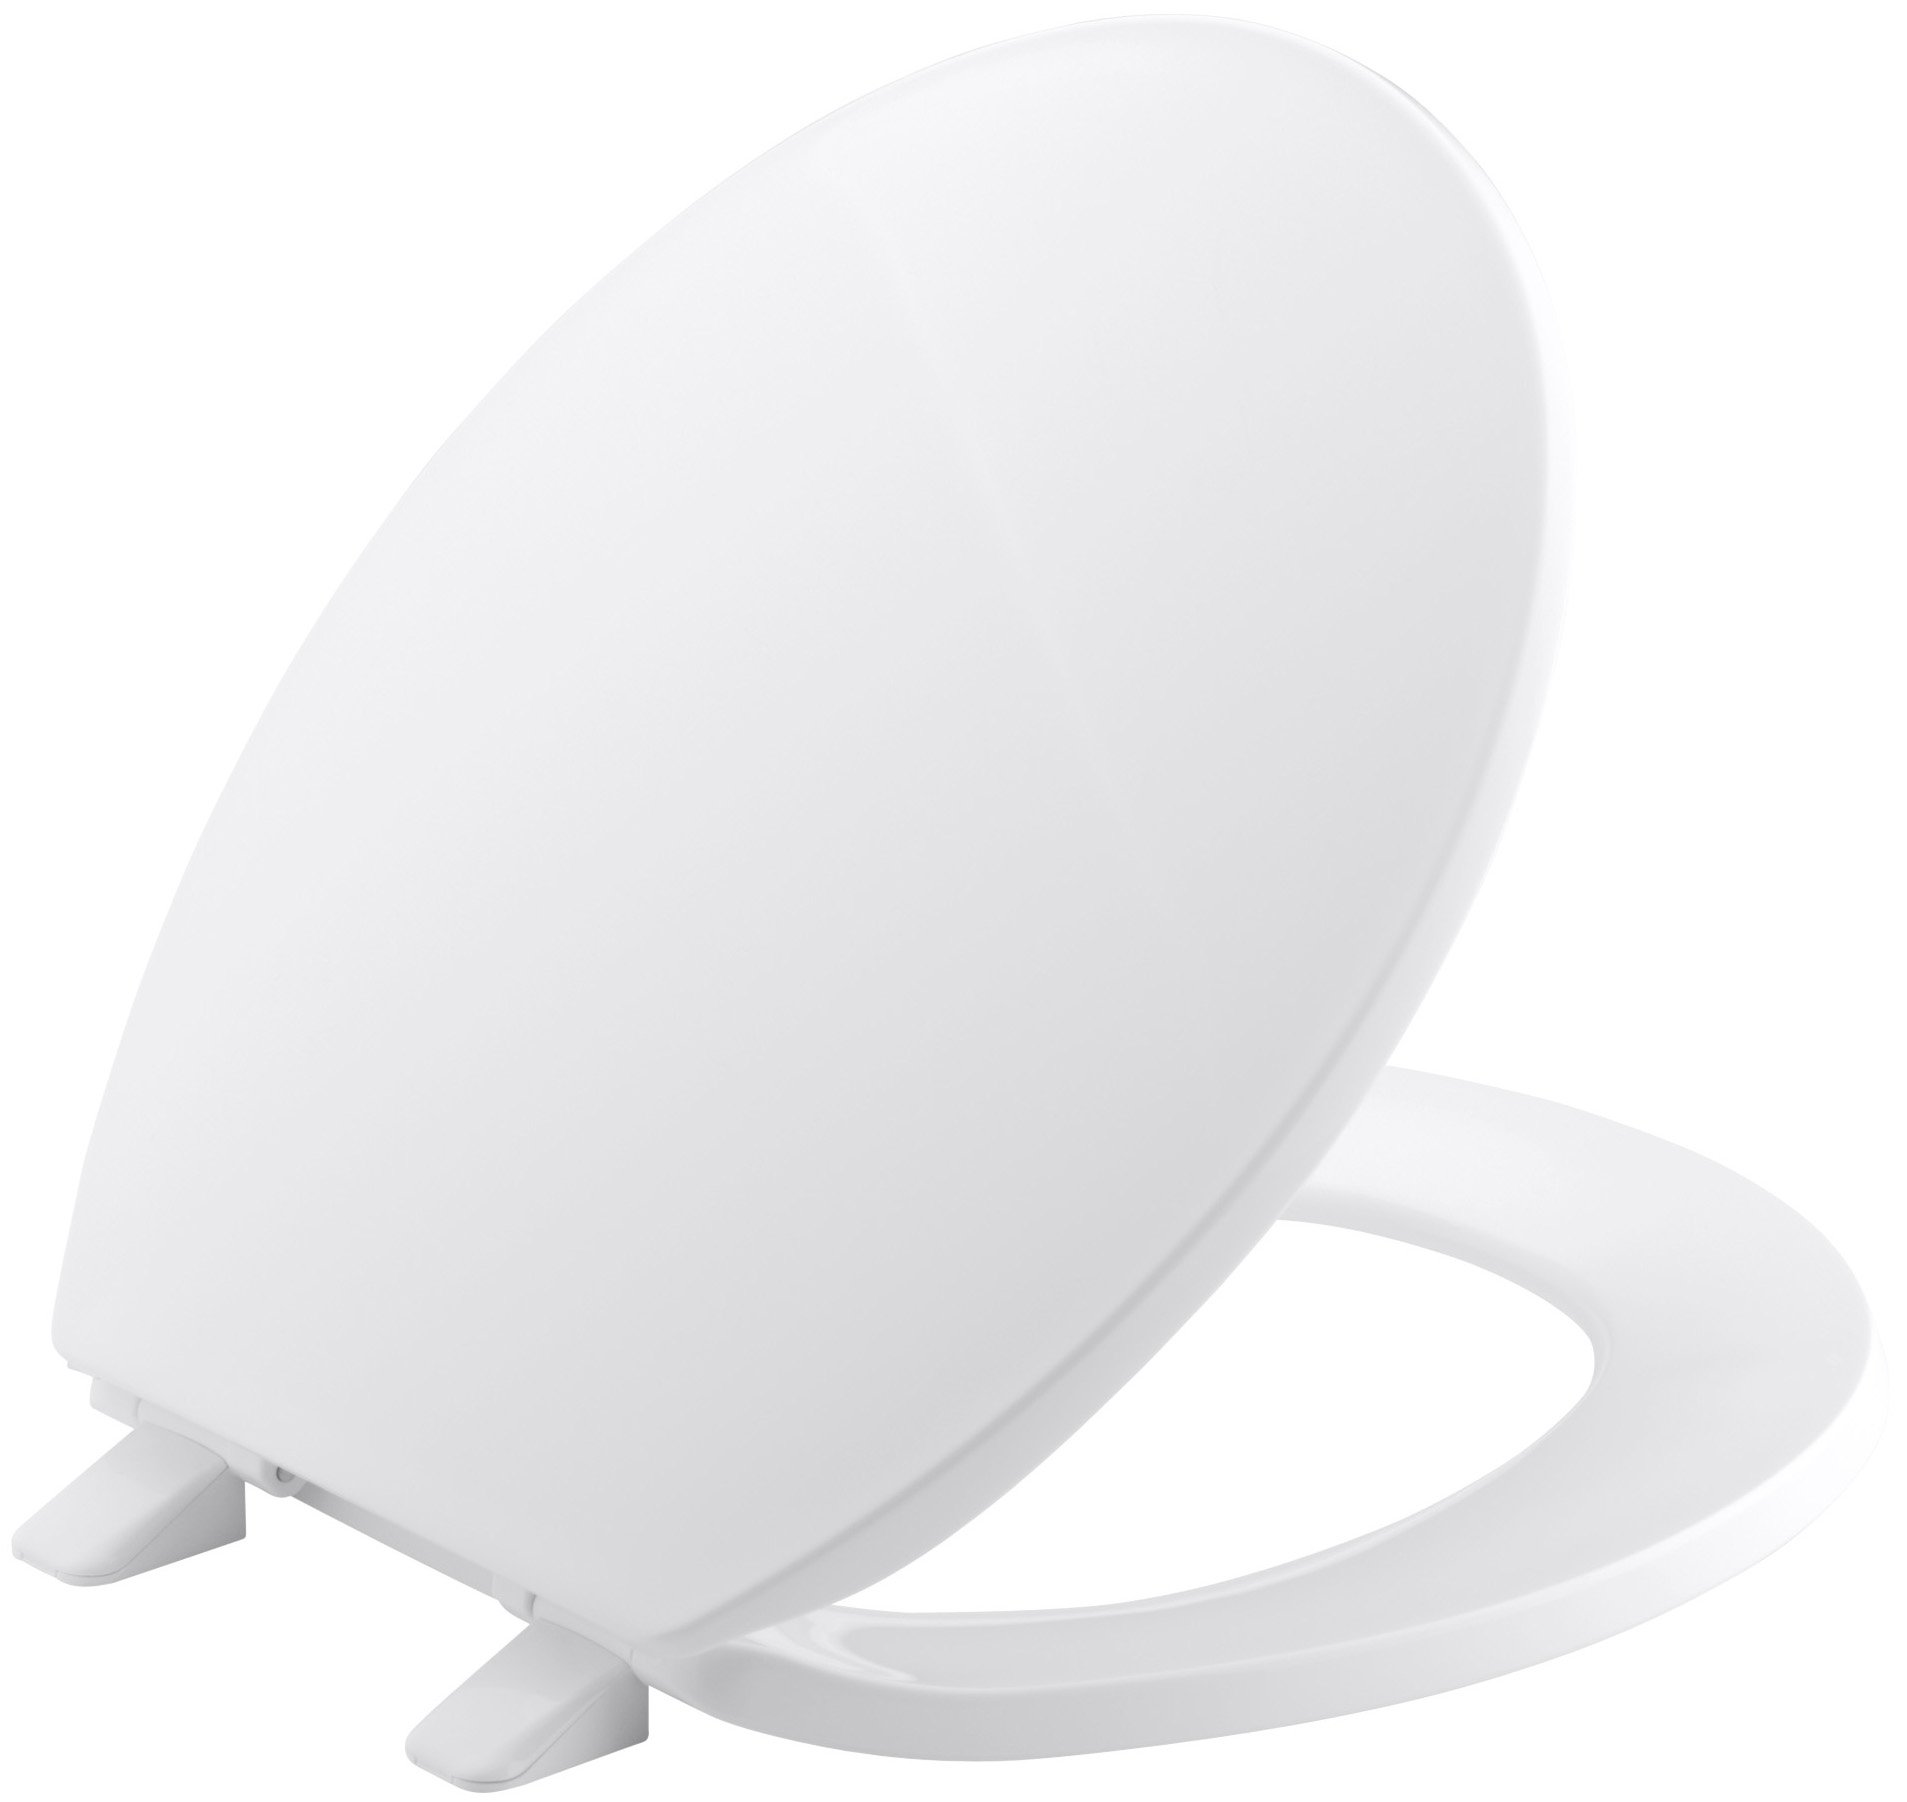 Kohler  K-4775-0 Brevia with Quick-Release Hinges Round-front Toilet Seat in White by Kohler